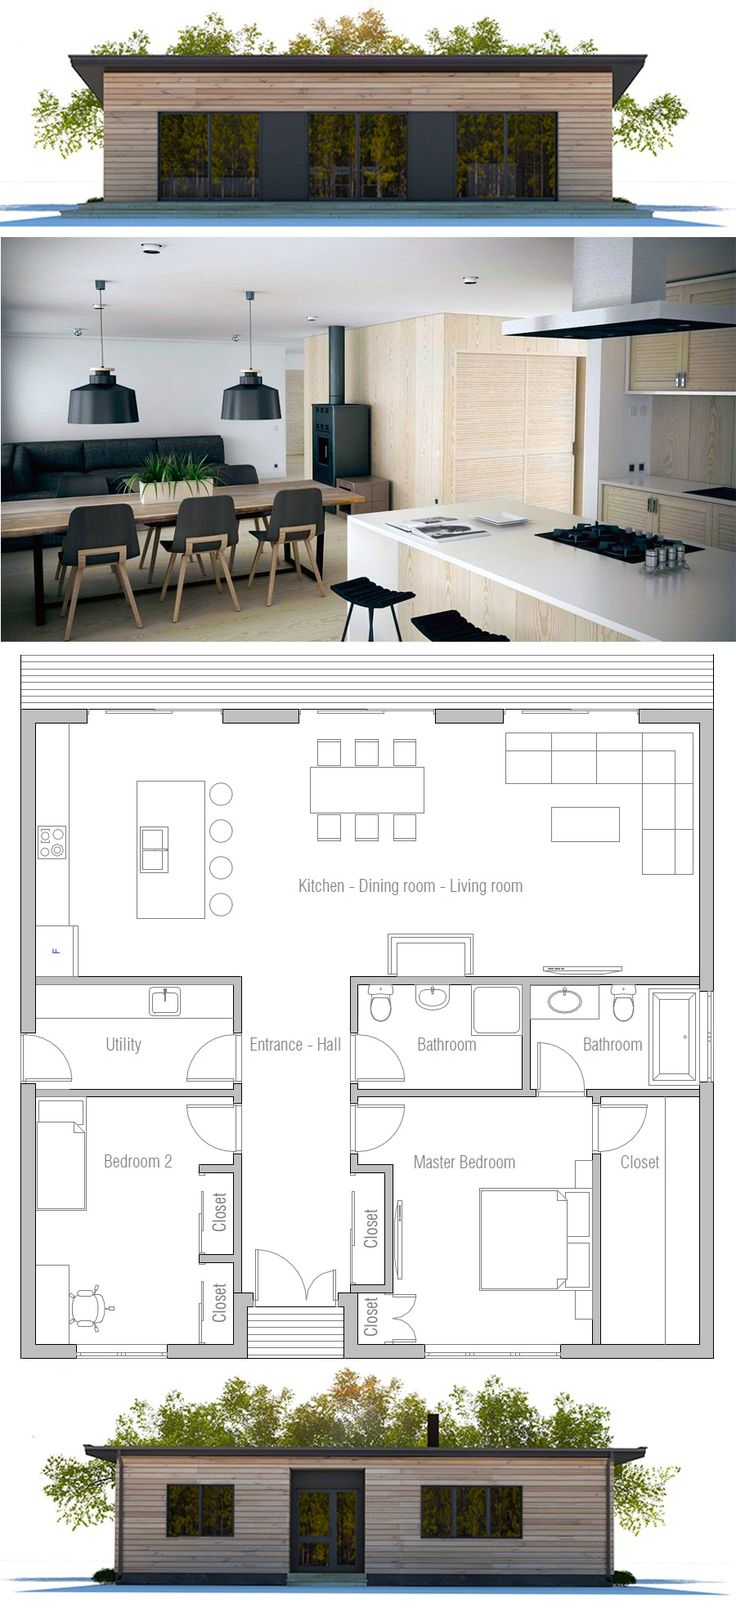 34 best Two Bedroom House Plans images on Pinterest ...